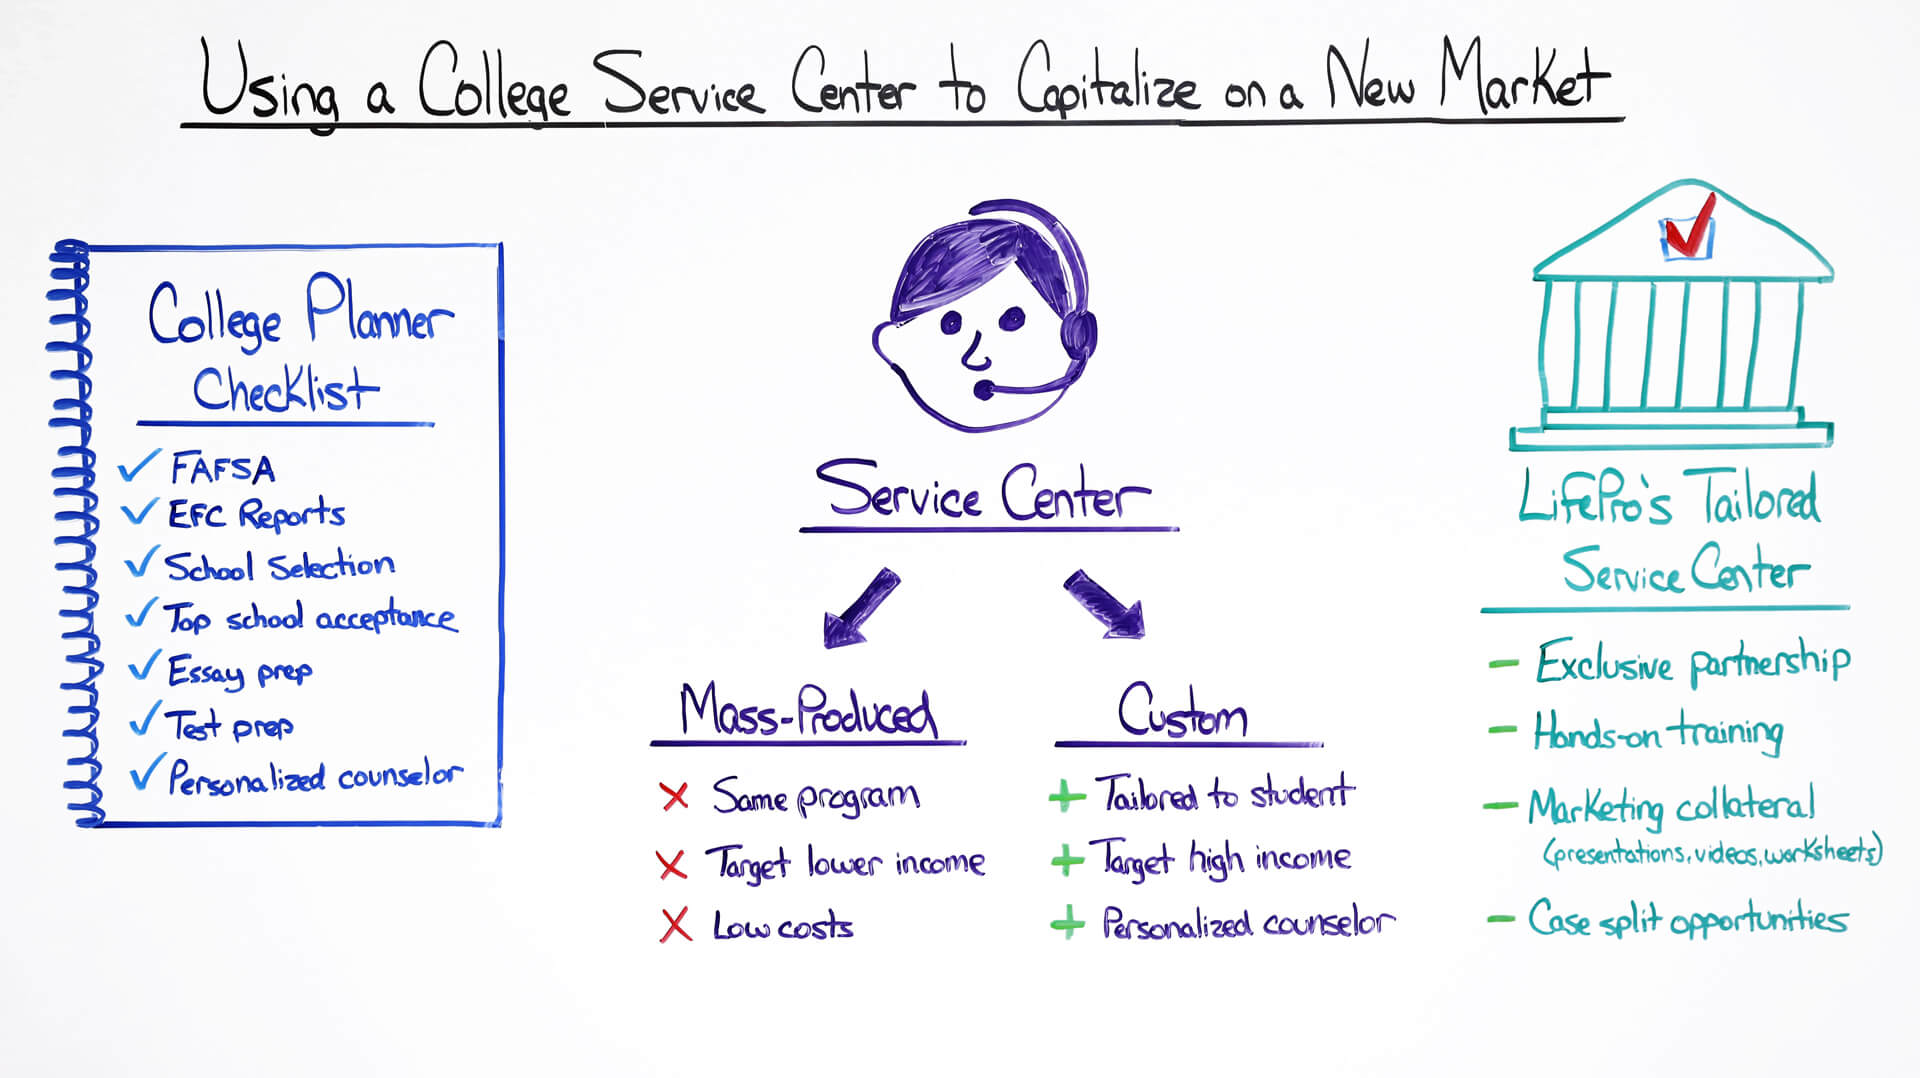 using a college service center to capitalize on a new market